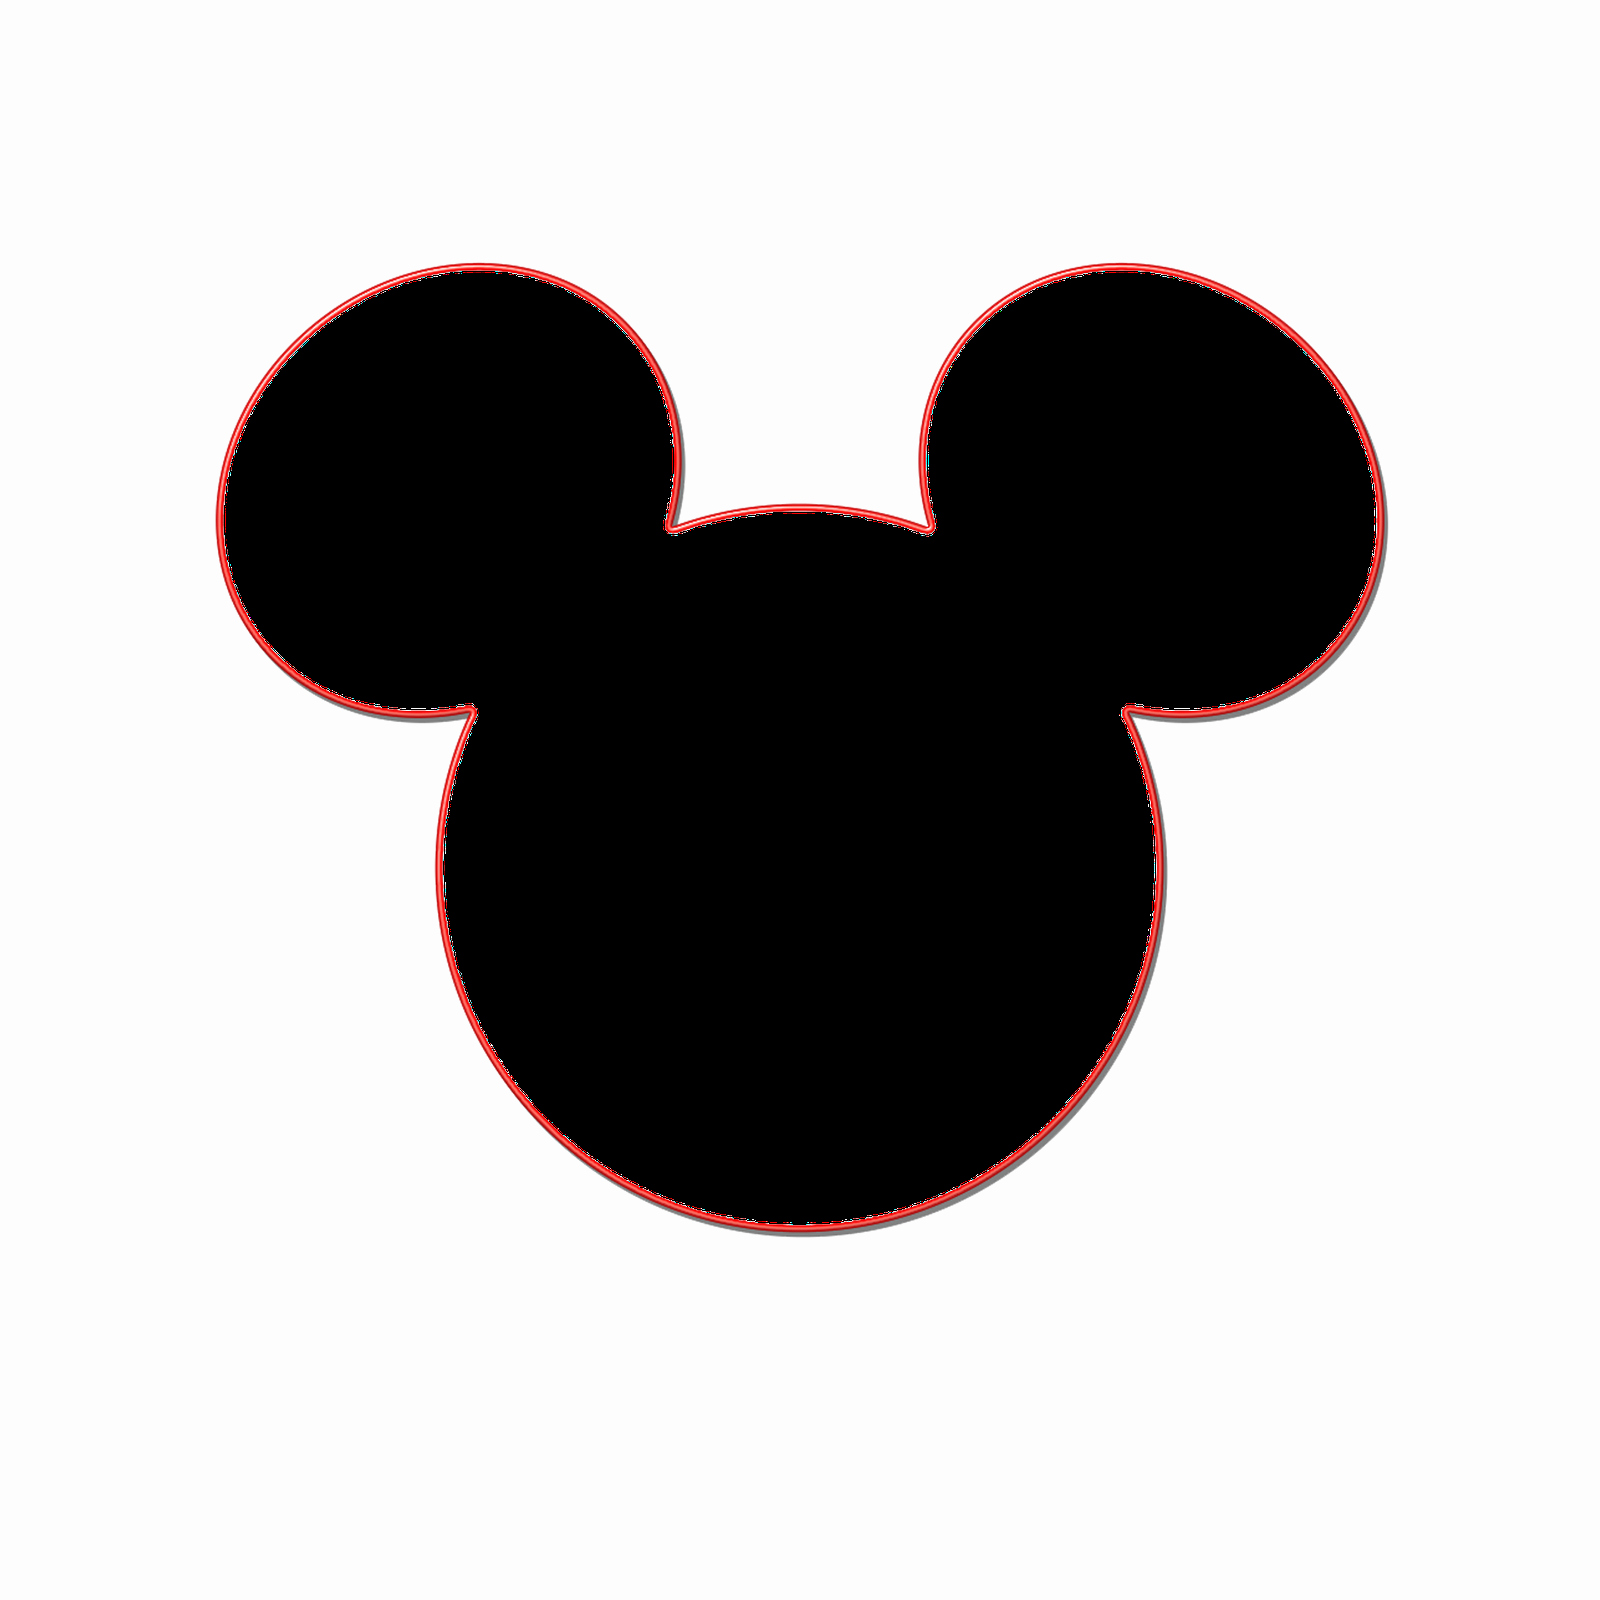 Mickey Mouse Head Template Luxury Milliepie S Musings Making Your Own Mickey Head